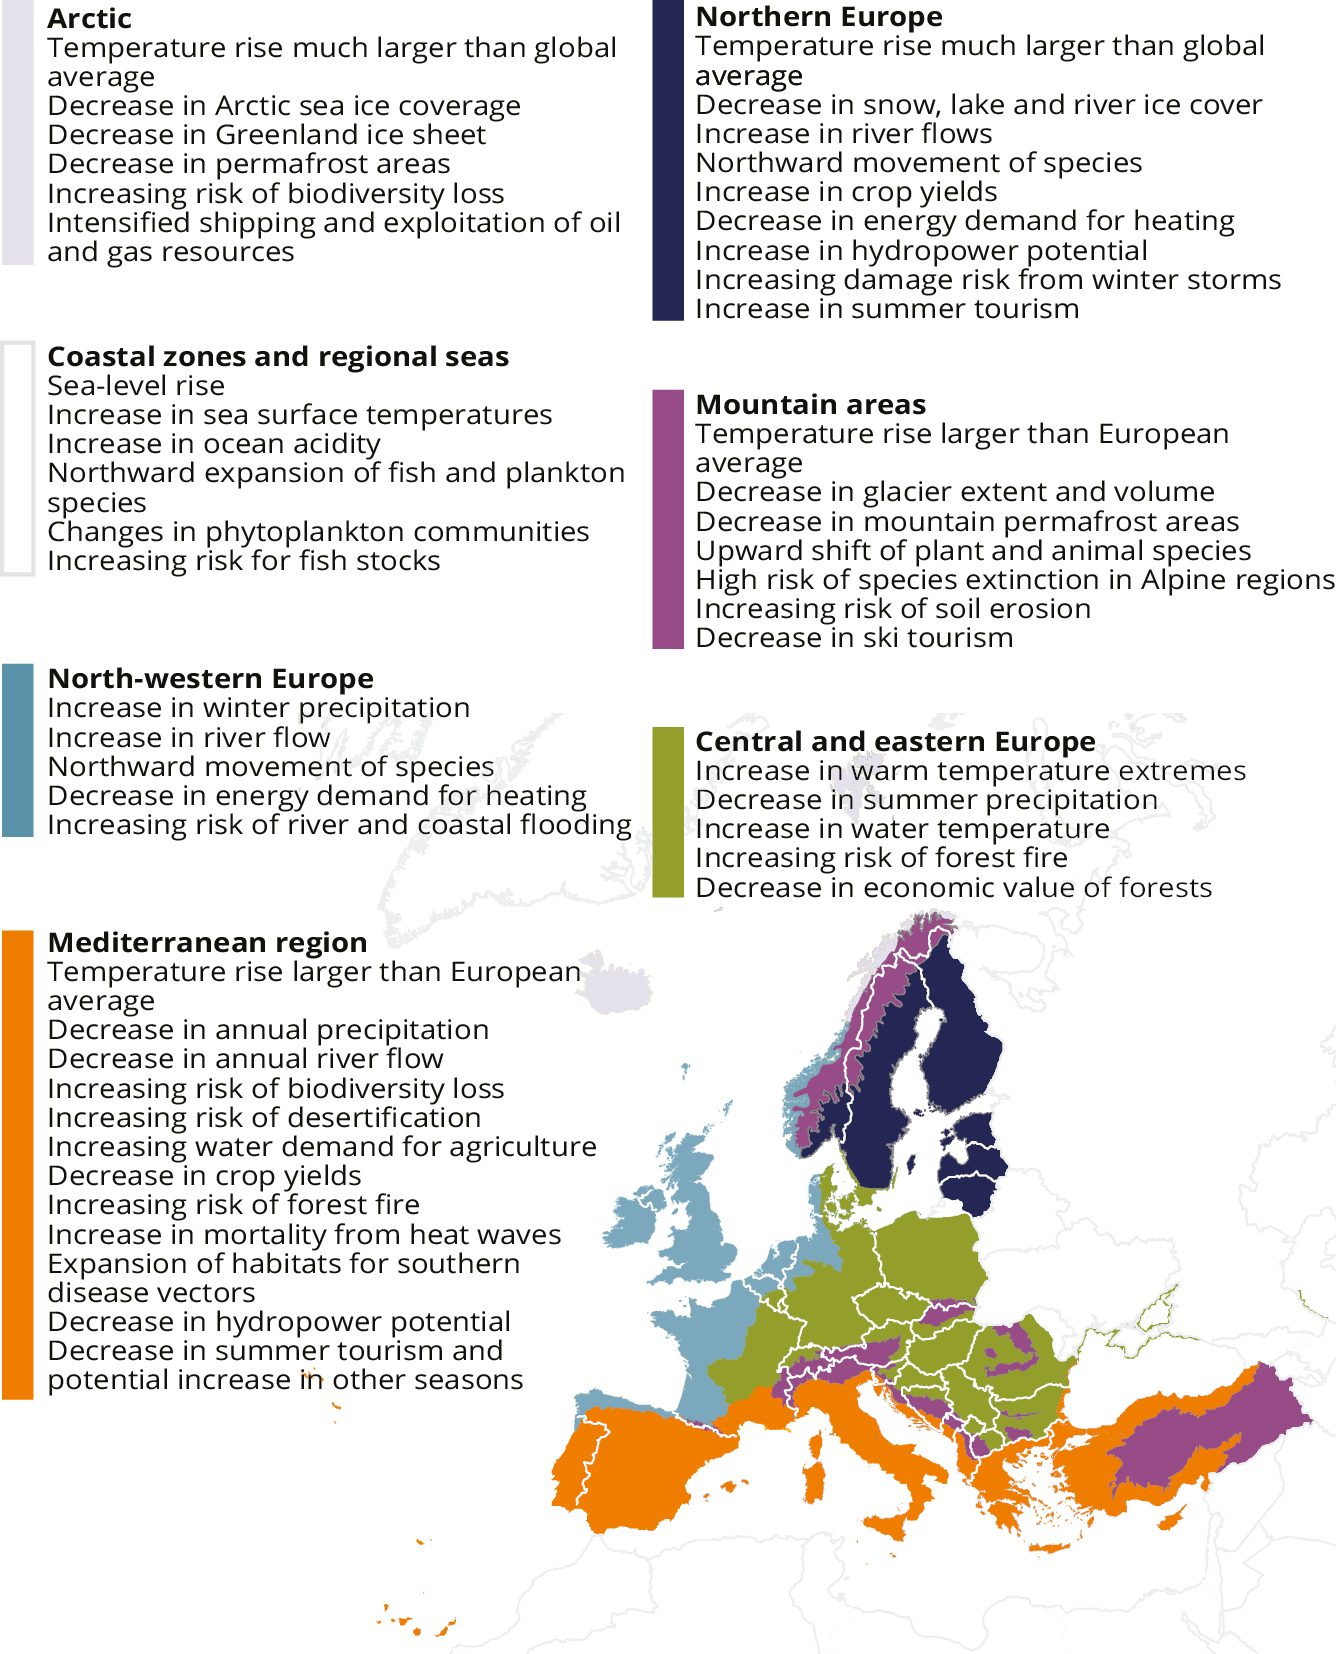 protecting conserving and enhancing natural capital european map 3 6 key observed and projected impacts from climate change for the main regions in europe